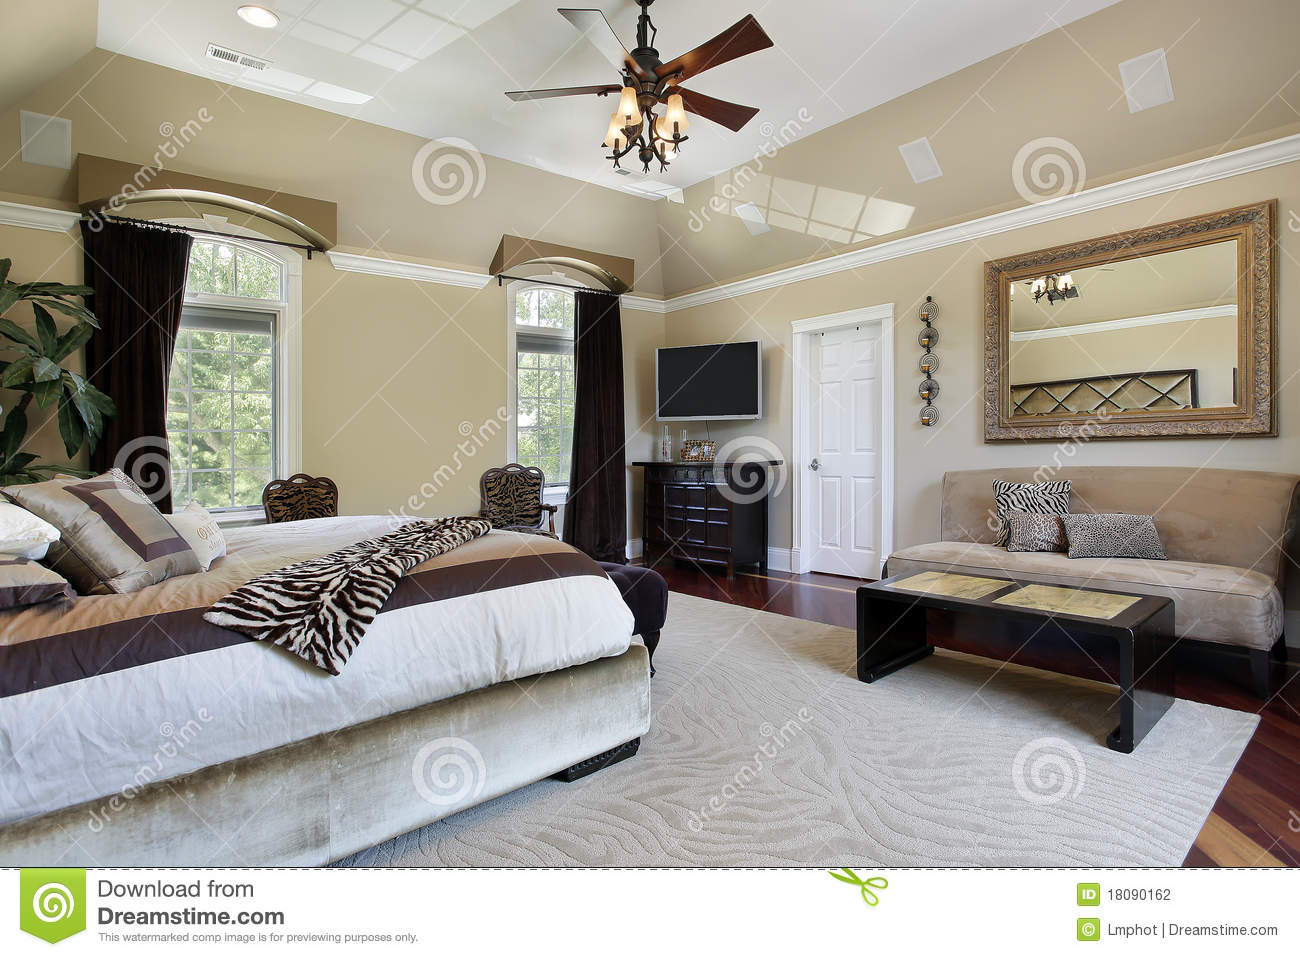 Master Bedroom With Tray Ceiling Stock Photo - Image of floor, real ...